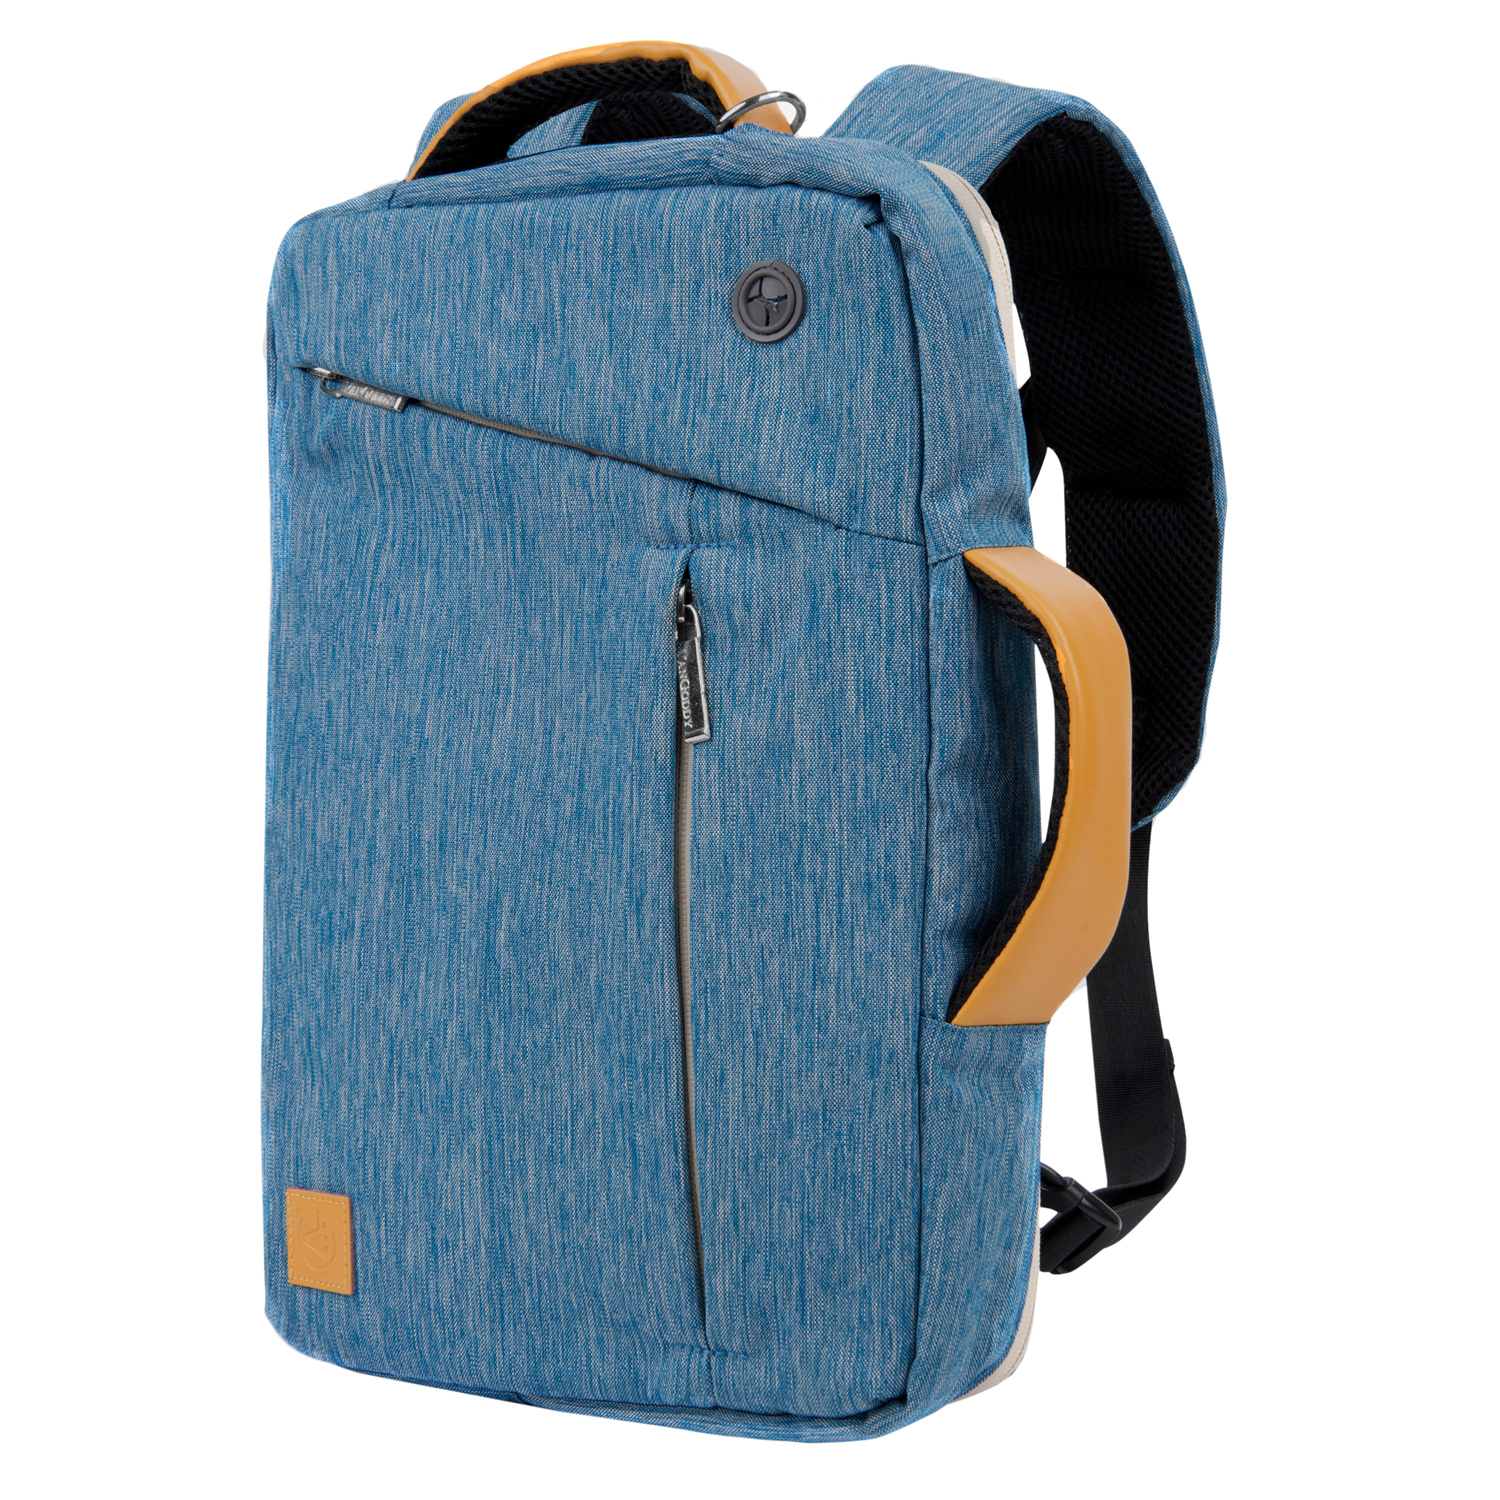 Slate Laptop Bag 12.5'' (Blue)